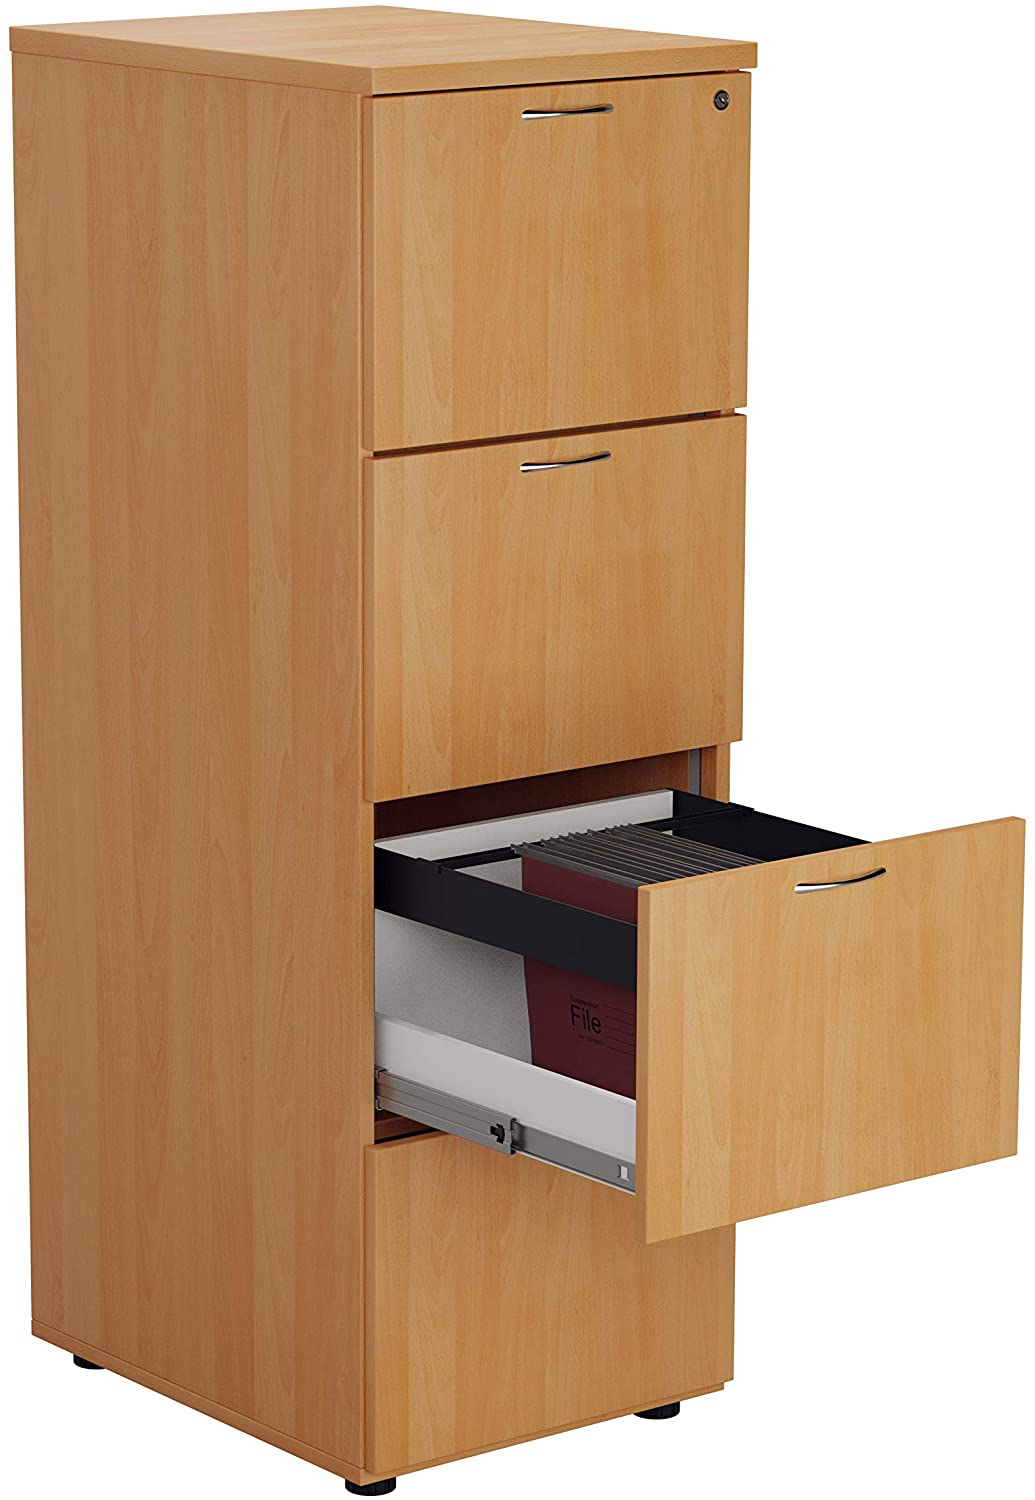 Relax Office Relax Office Smart Wooden Filing Cabinet With 4 Drawers540mm Wooden Filing Cabinet With 4 Drawers Office Storage File Organizers Lockable